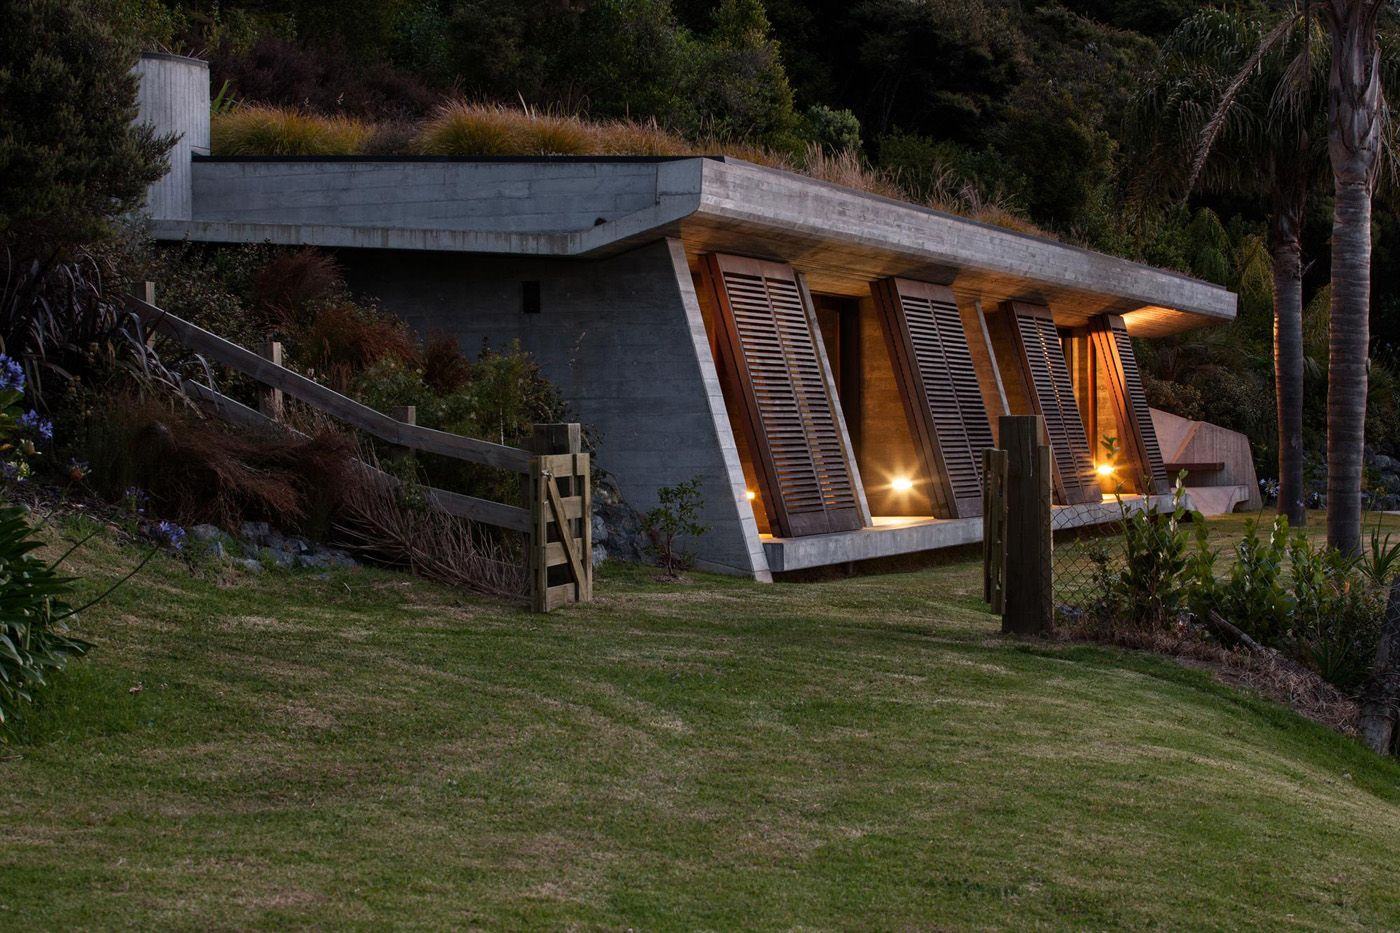 House design northland - The Guest Wing Of The Rawhiti House Northland By Studio Pacific Architecture Photograph